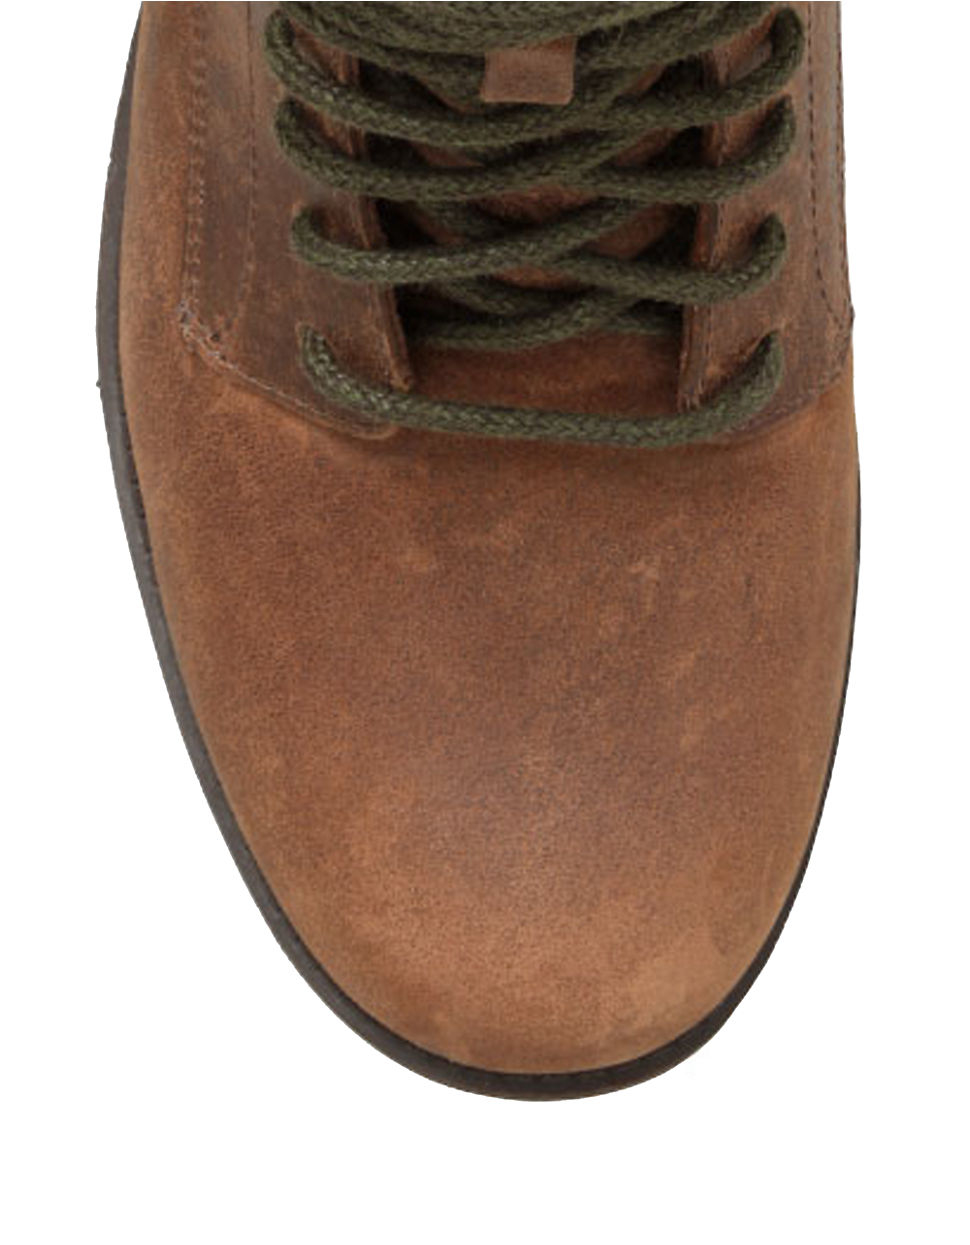 ddecfe1b5fe Ugg Leather Lace Up Boots - cheap watches mgc-gas.com